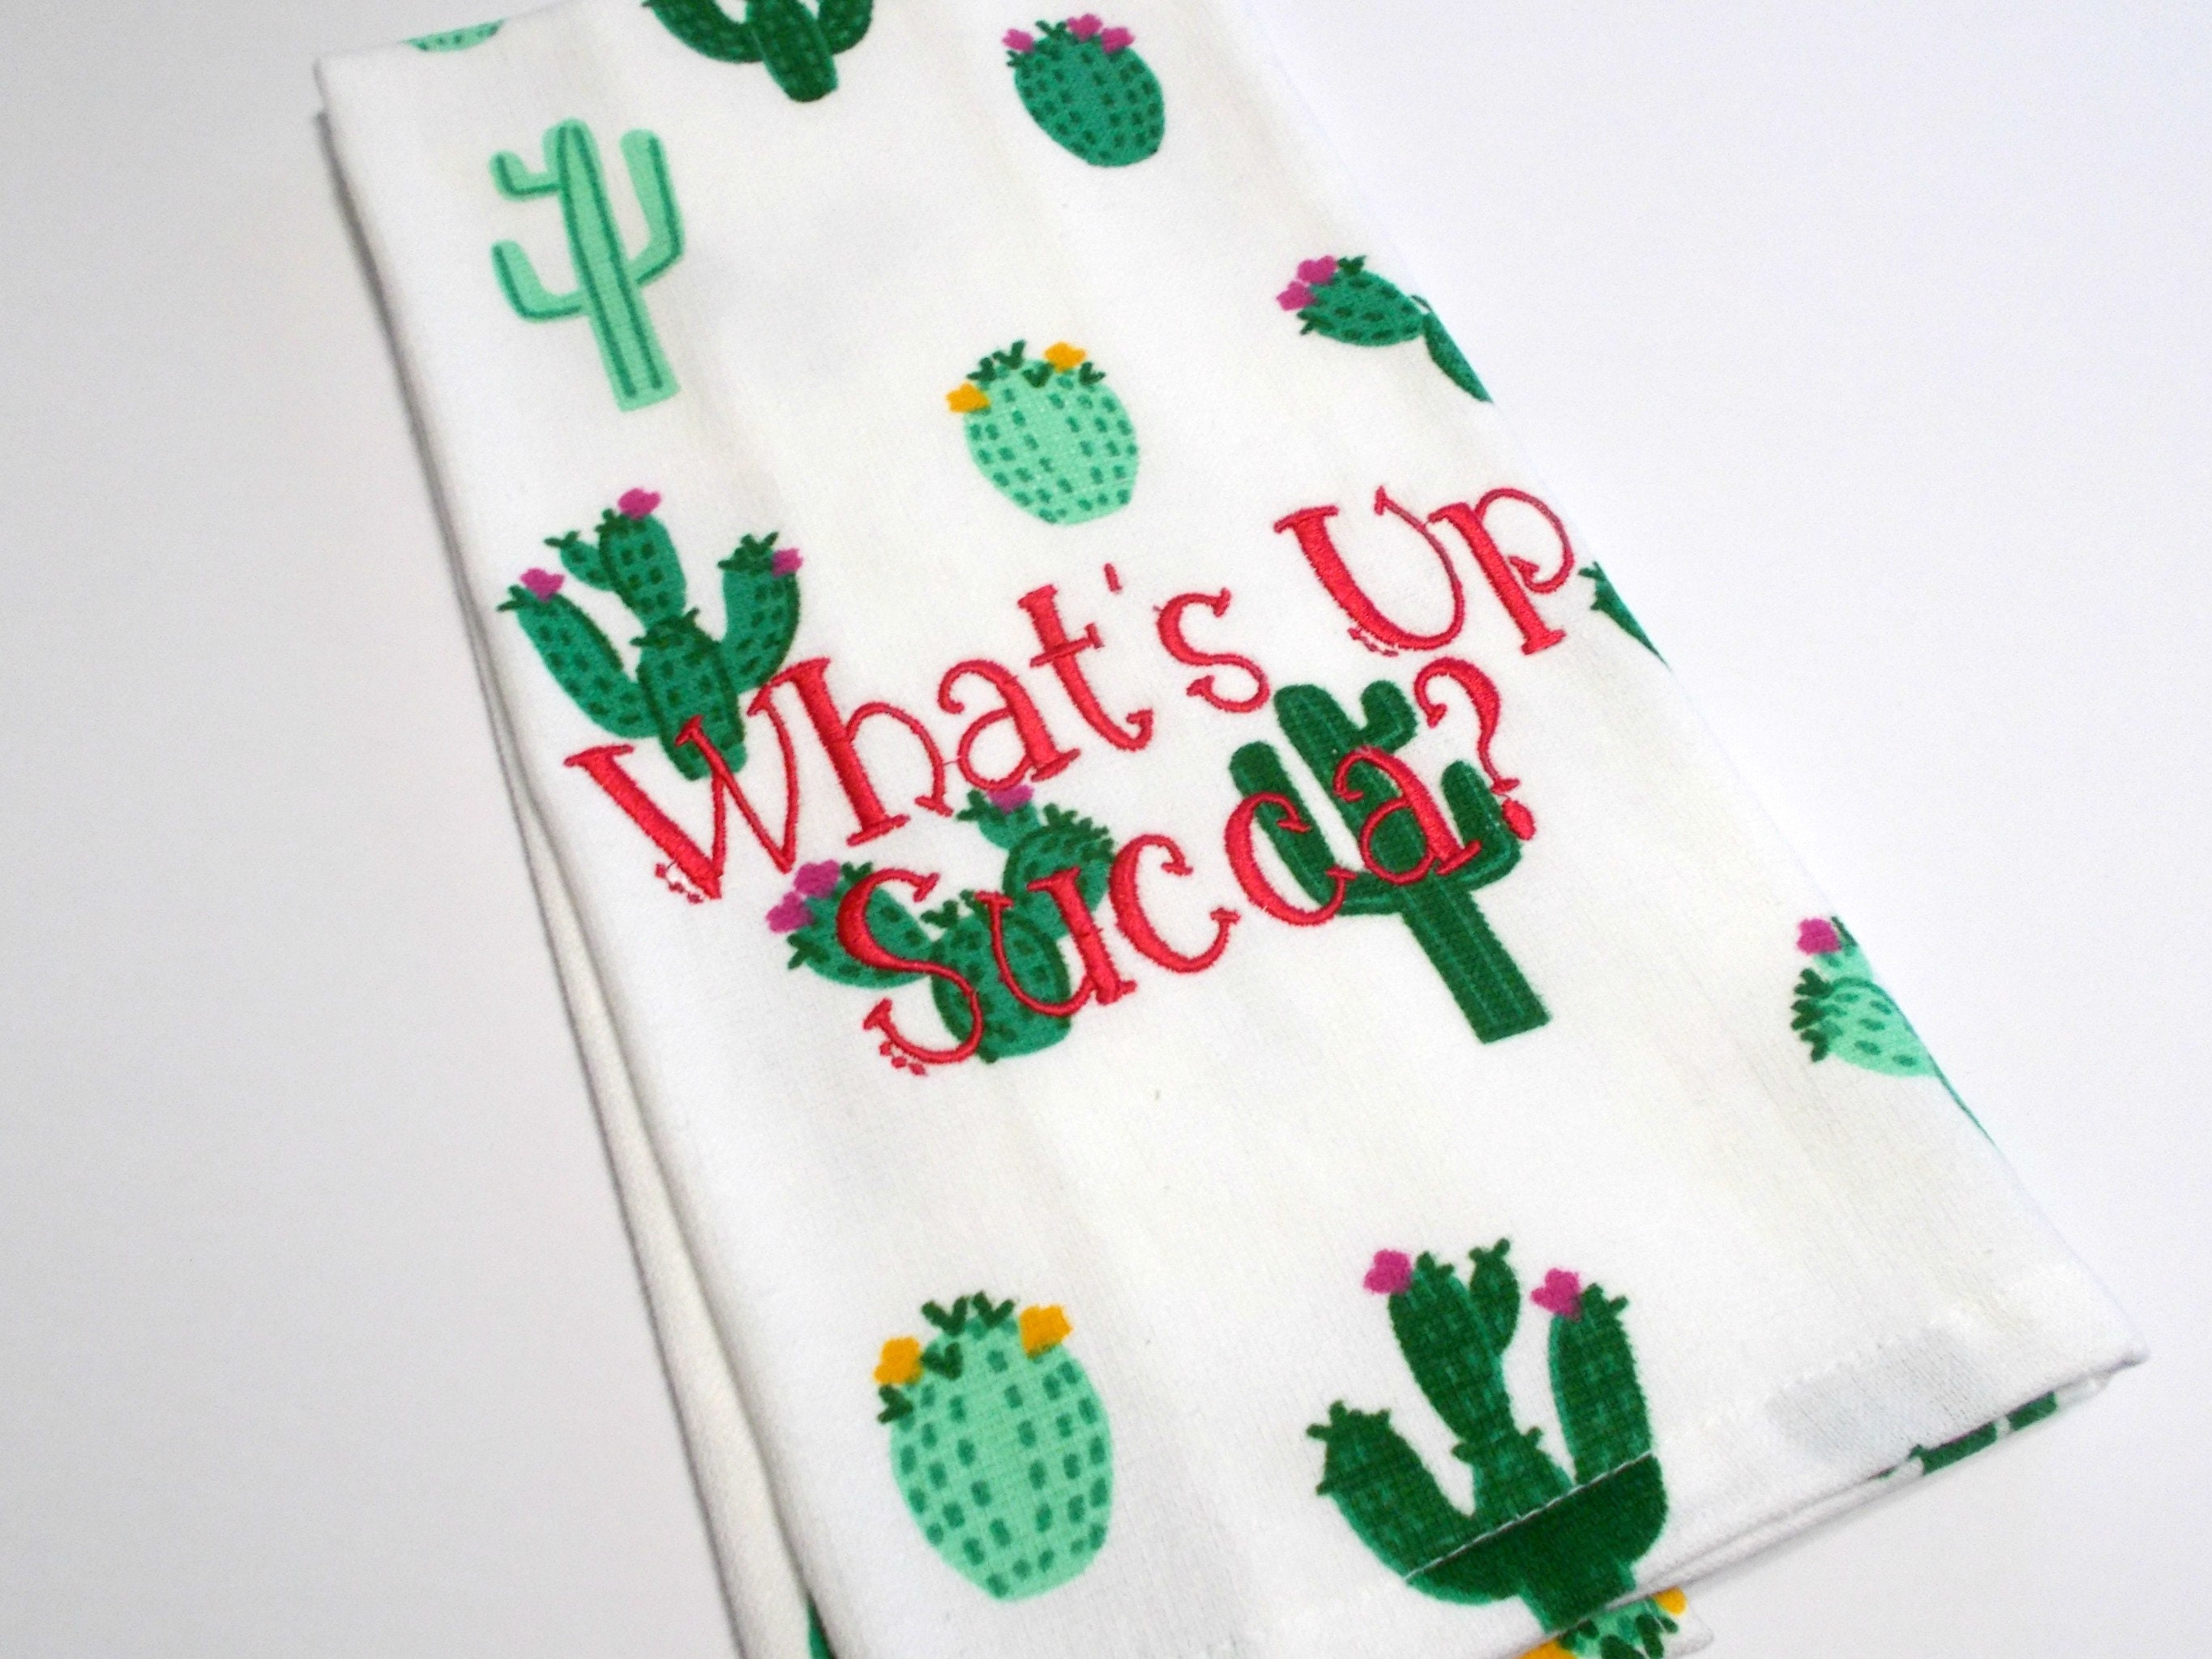 Succulent   Whatu0027s Up   Cactus Humor   Fun Cactus   Succa   Inappropriate   Funny  Kitchen Towel   Funny Towel   Sarcastic   10 Dollar Gift